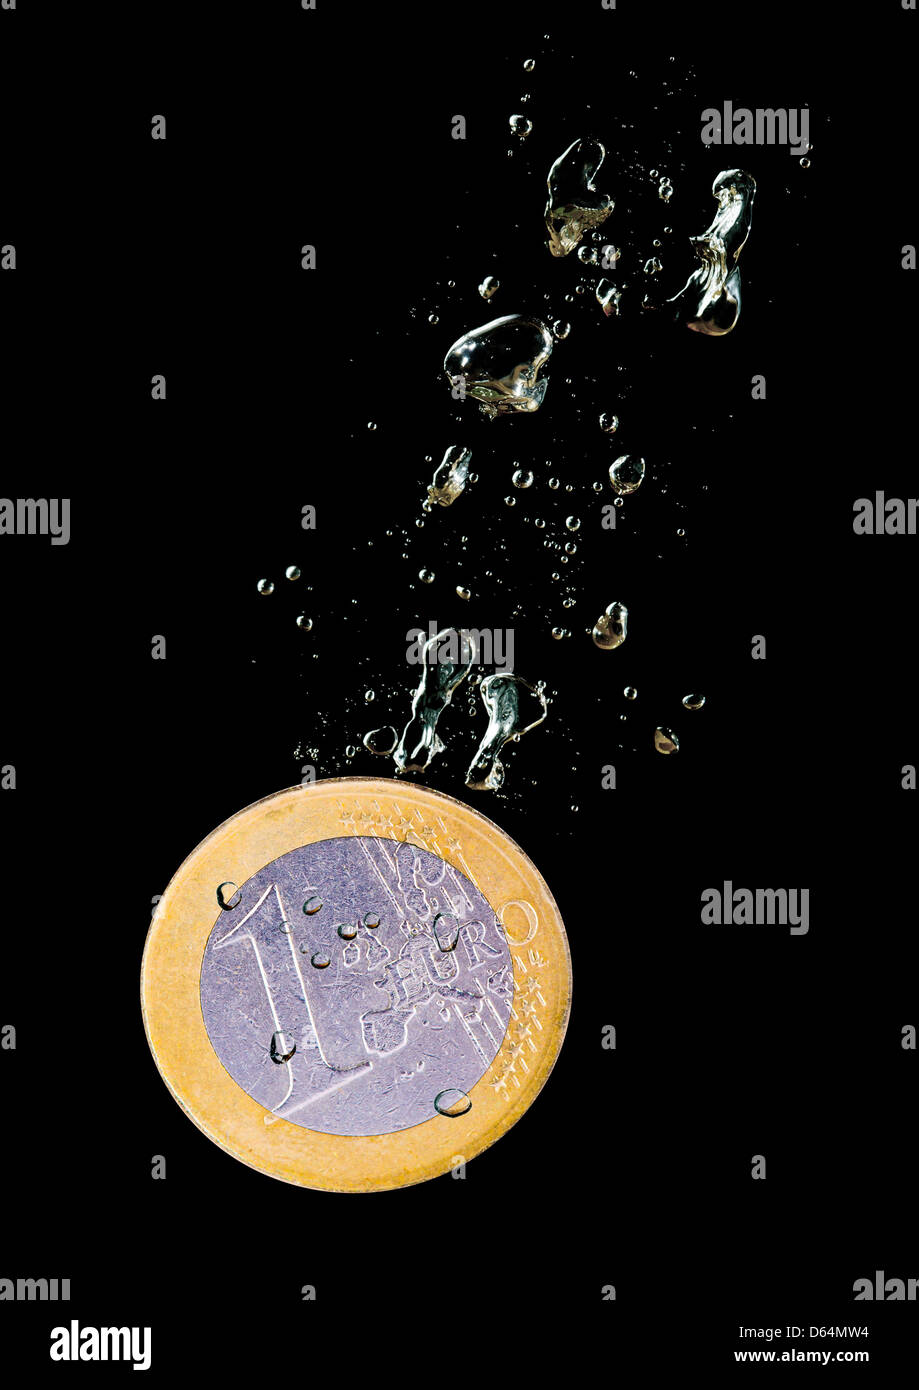 Concept with euro coin sinking in water over black background - Stock Image